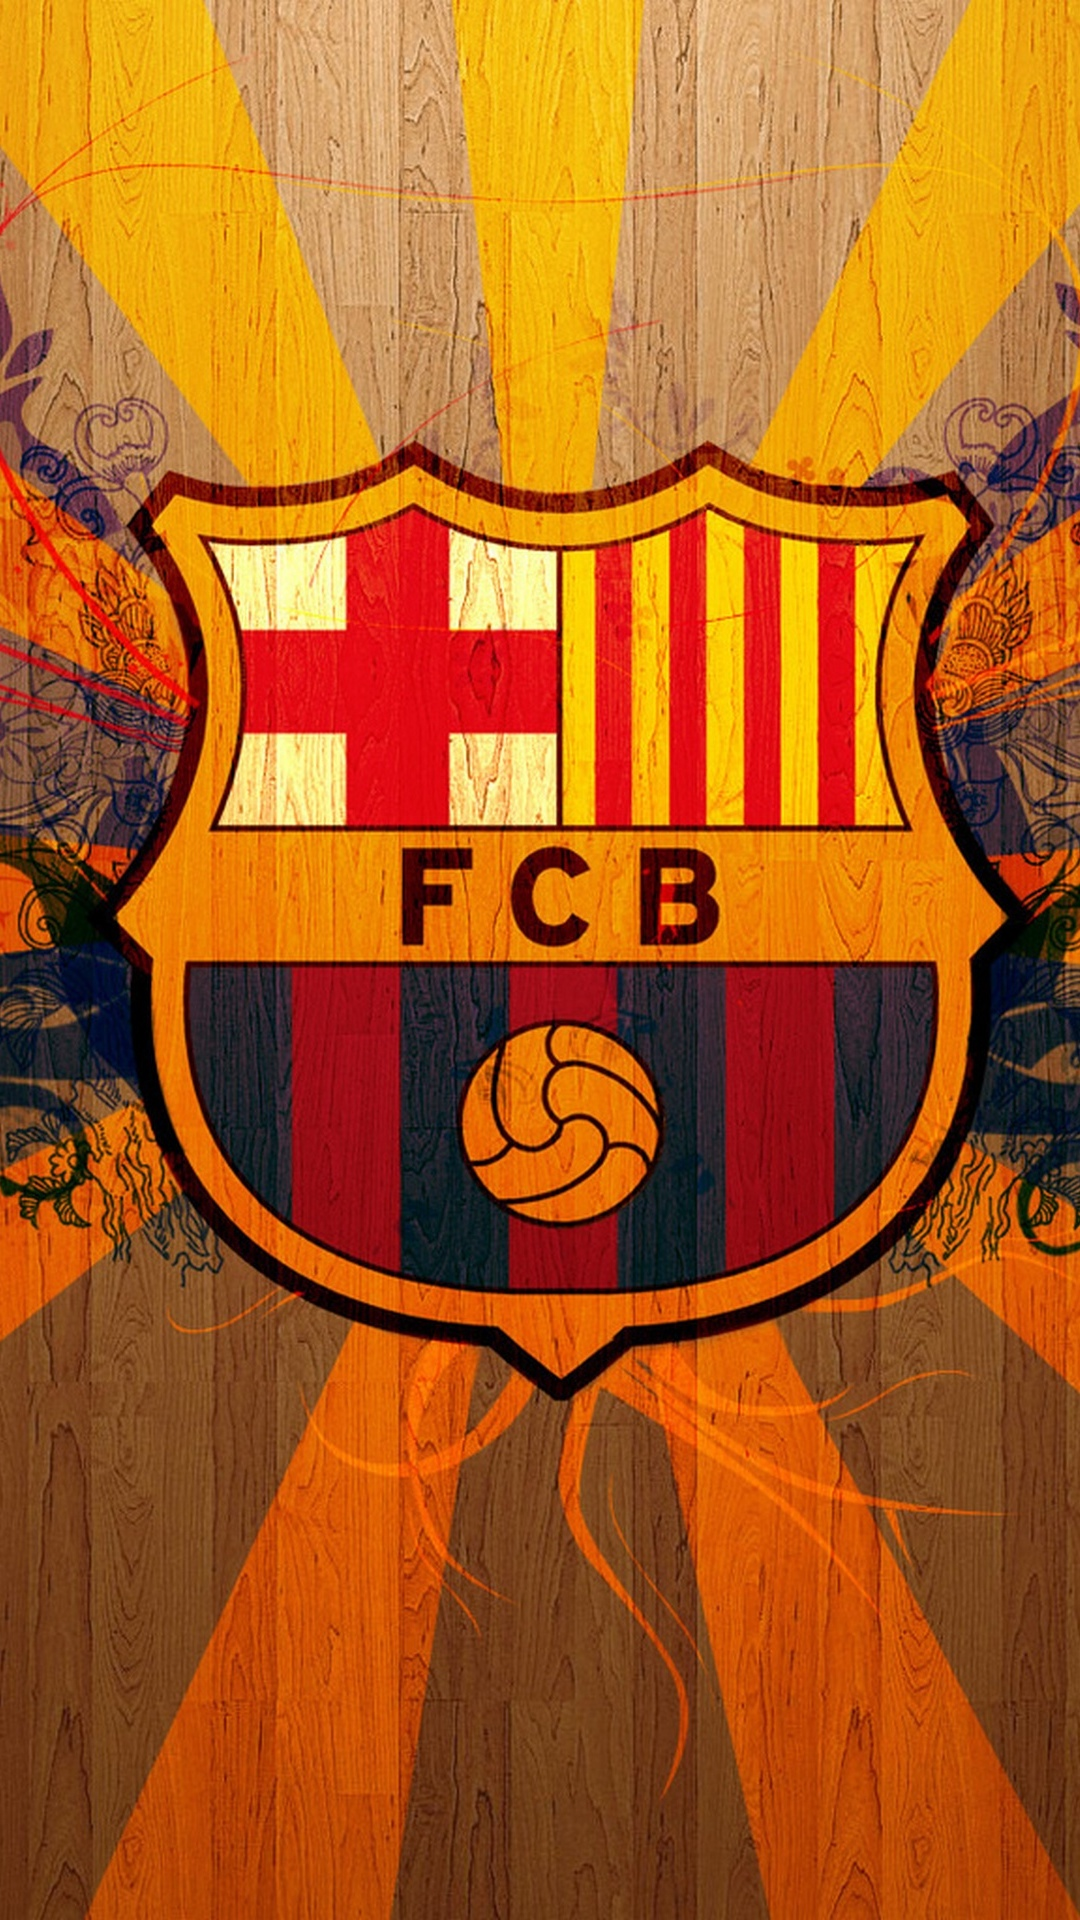 wallpapers for galaxy fc barcelona logo wallpapers for samsung galaxy s4